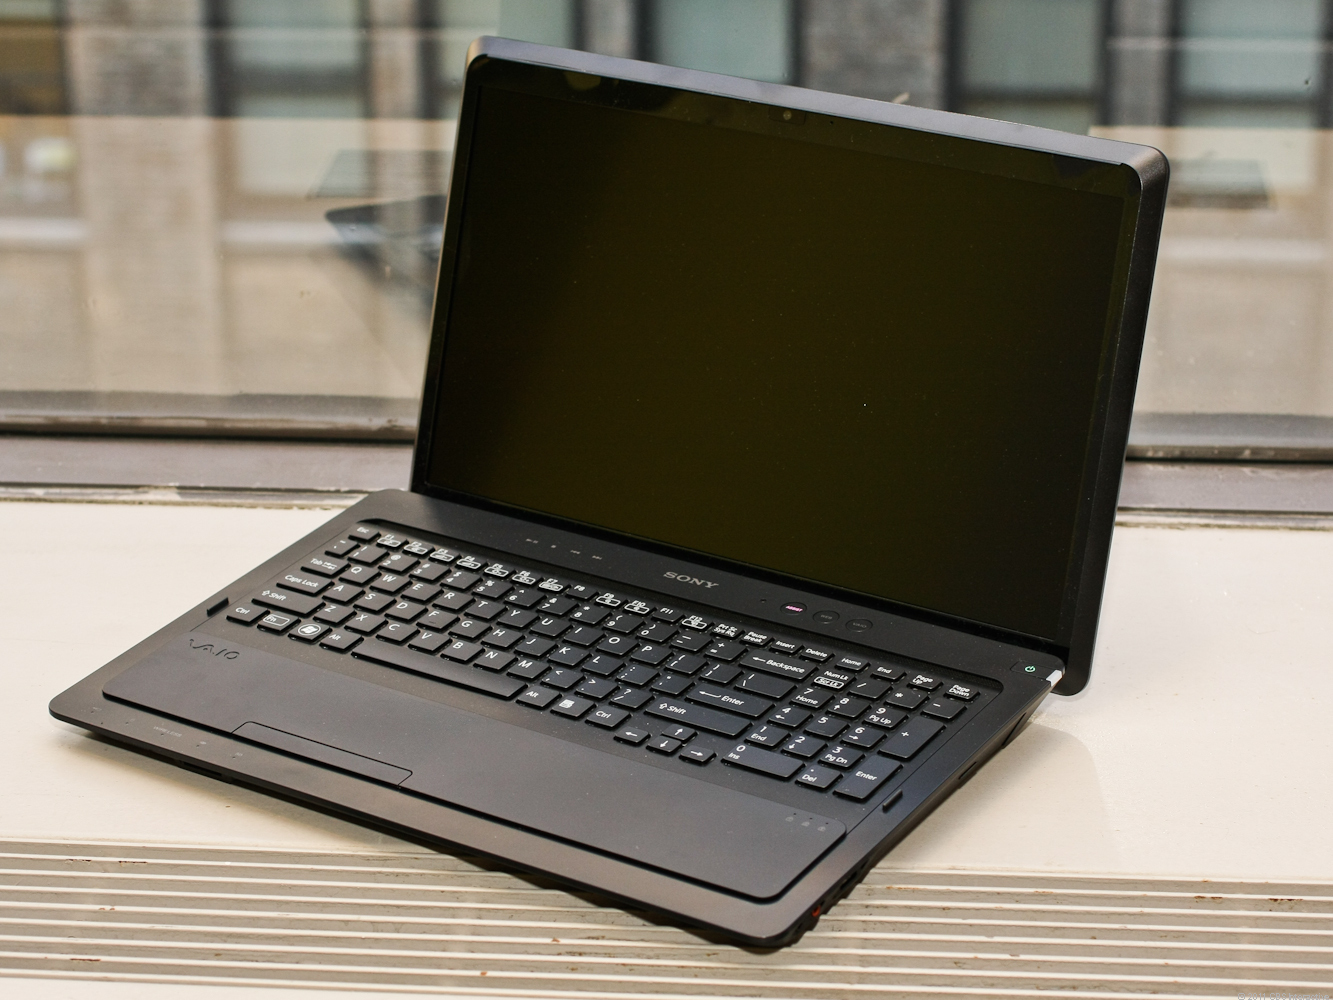 """Sony VAIO F Series VPC-F237FX/B - 16.4"""" - Core i7 2670QM - 8 GB RAM - 640 GB HDD - QWERTY"""